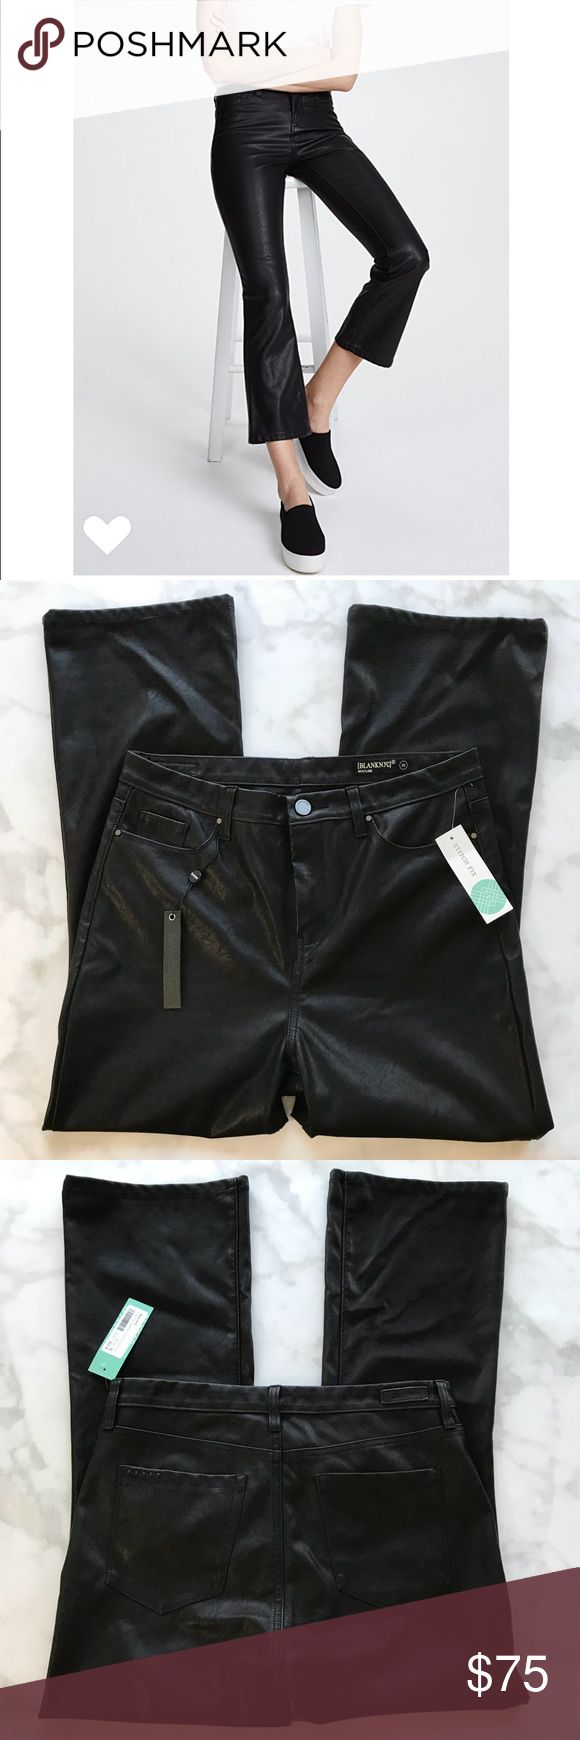 Blank NYC vegan leather kick flare cropped jeans Blank NYC black vegan leather kick flare cropped jeans. Size 30. Please refer to measurement pictures in addition to brand sizing for most accurate fit.  Faux-leather Blank Denim pants in a slightly flared profile .5-pocket styling. Button closure and zip fly.  Fabric: Faux leather. 60% polyester/40% viscose Blank NYC Pants Ankle & Cropped